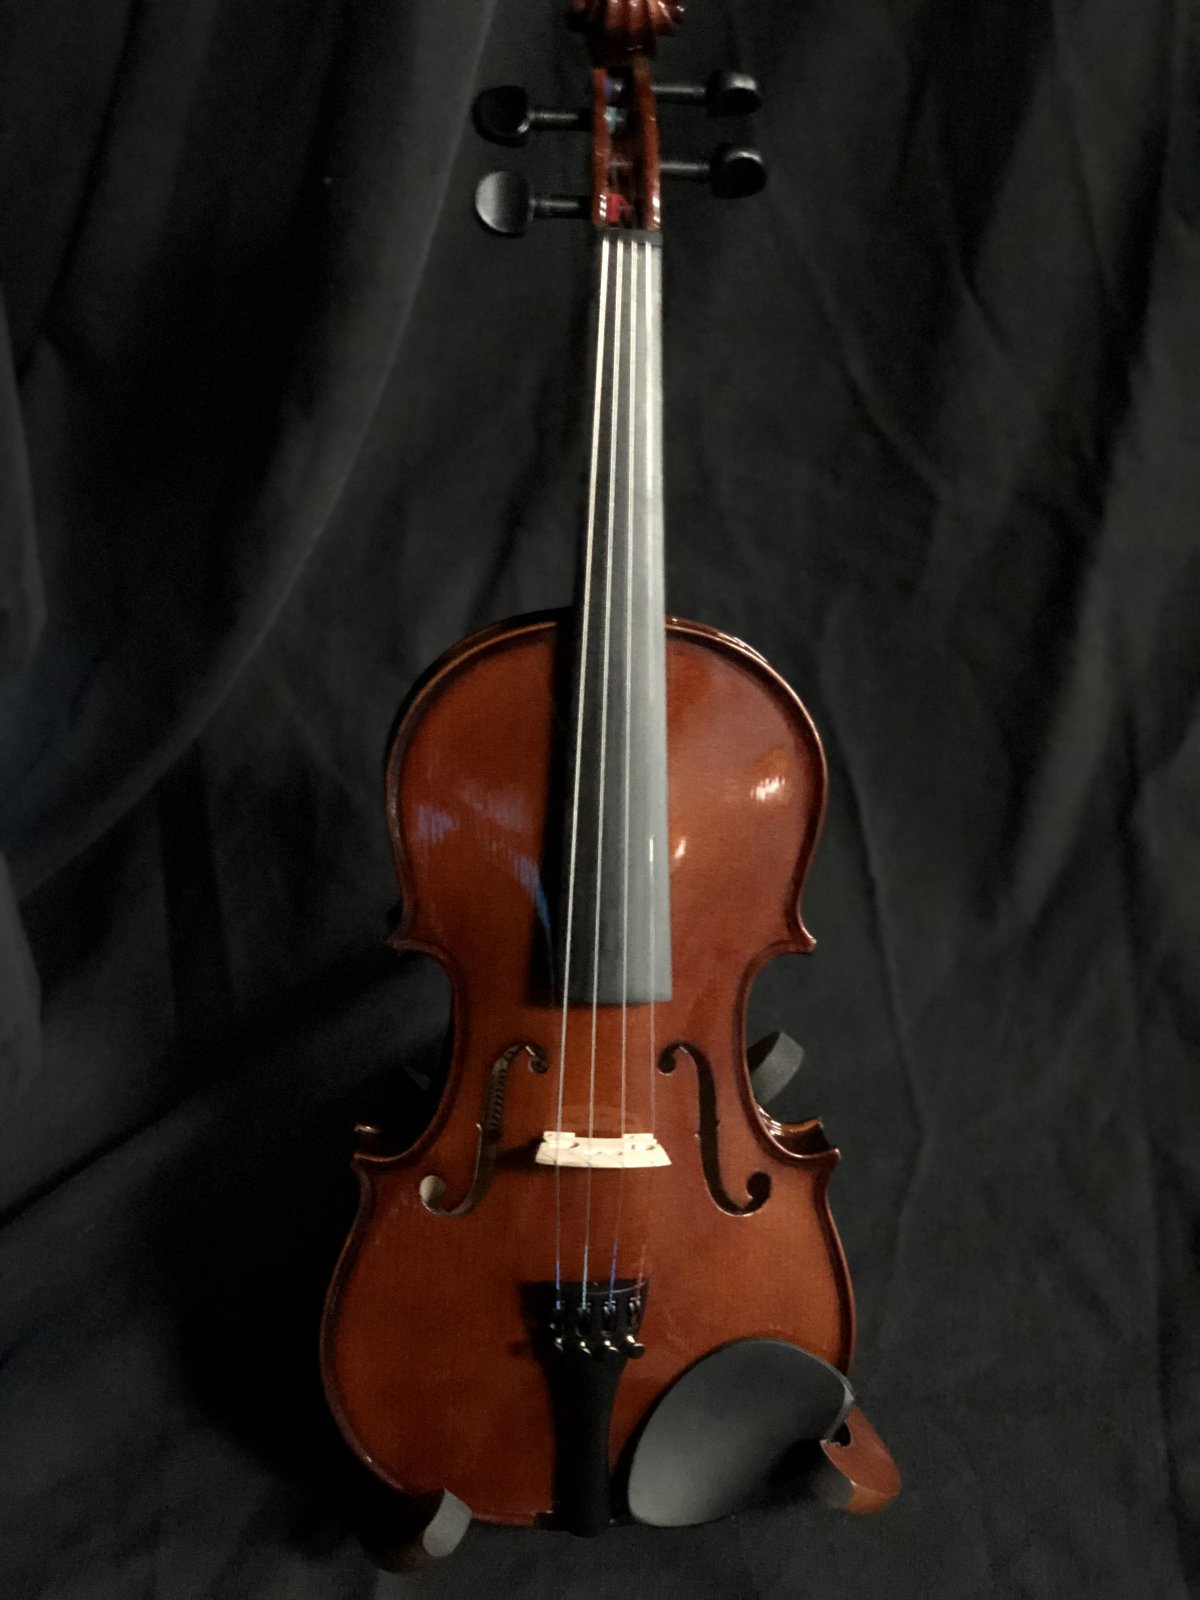 Preowned Palatino 3/4 size Violin set